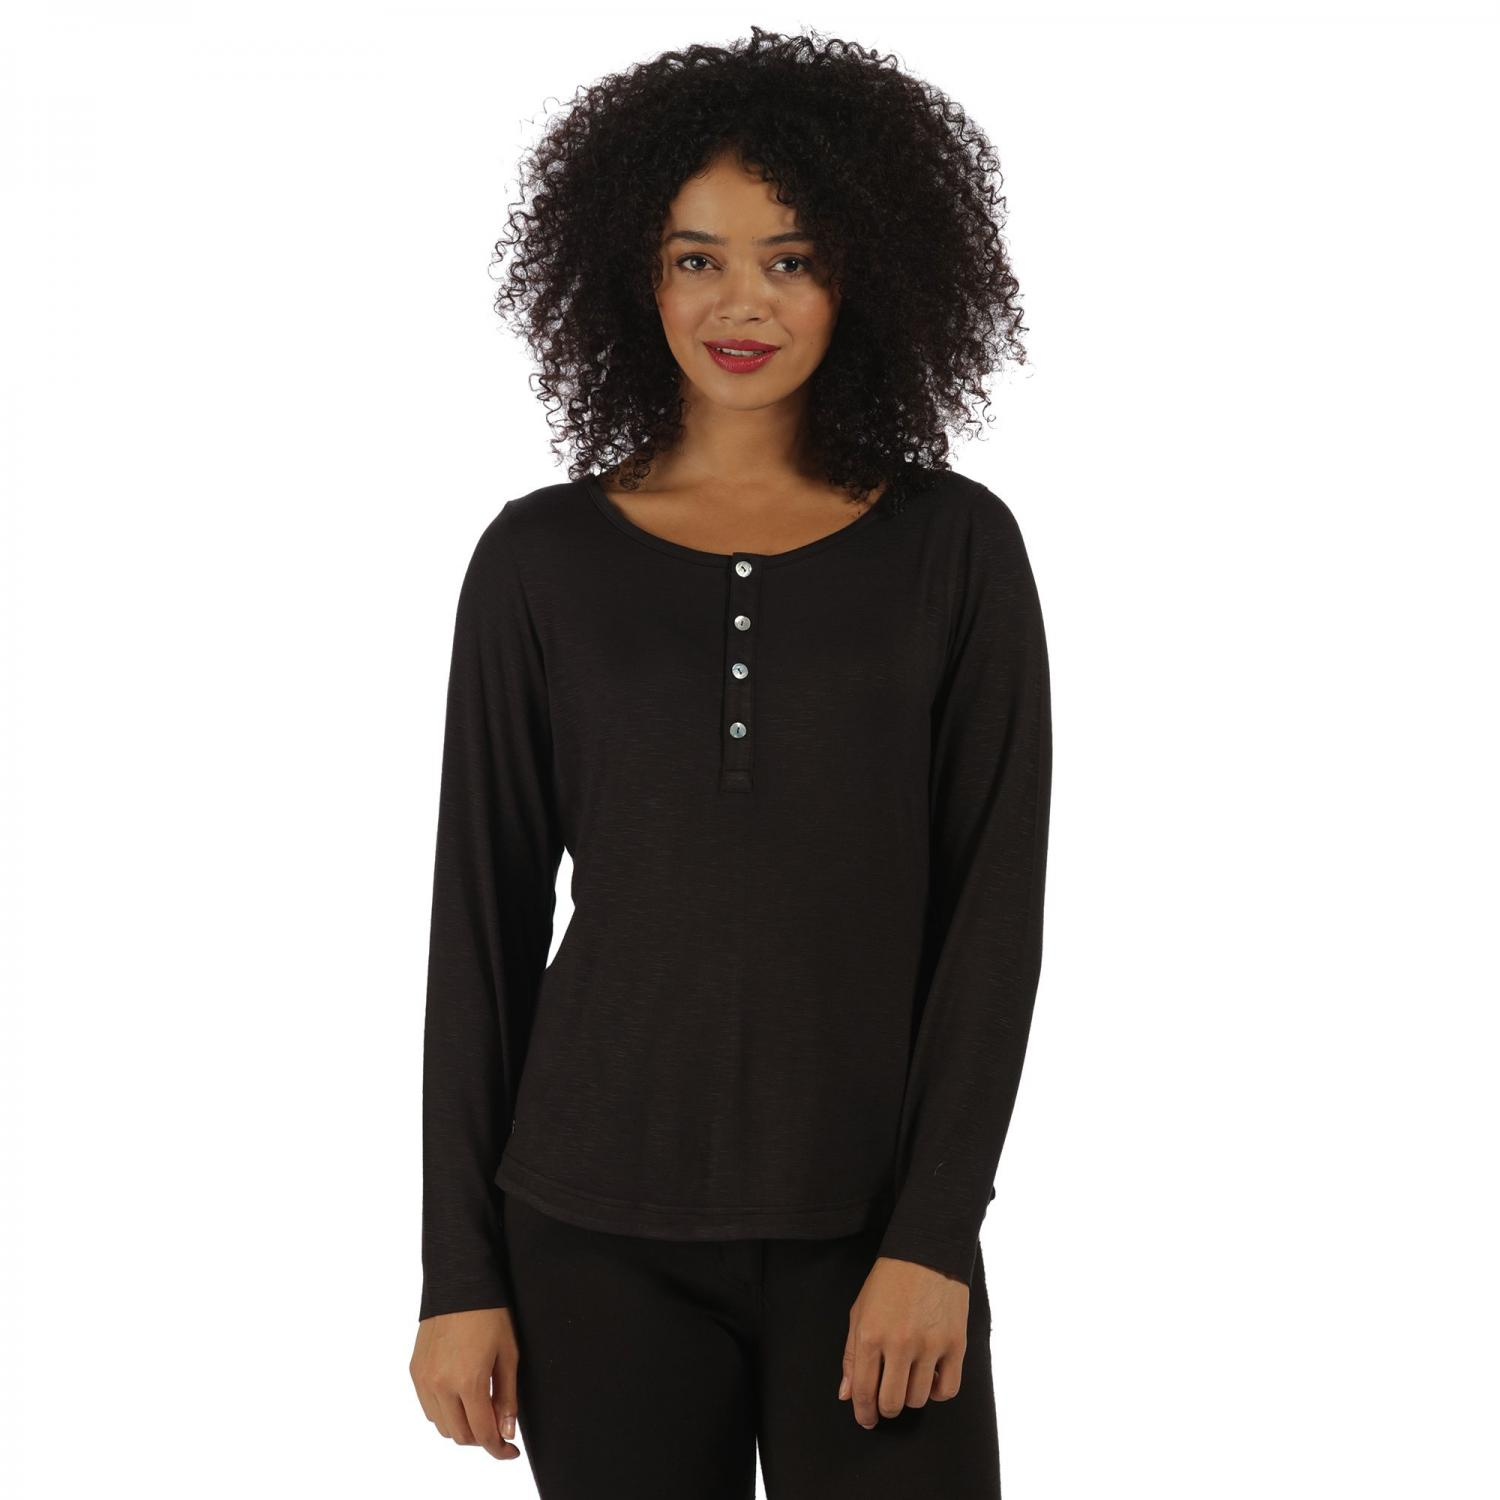 Nolany Long Sleeve Top Black